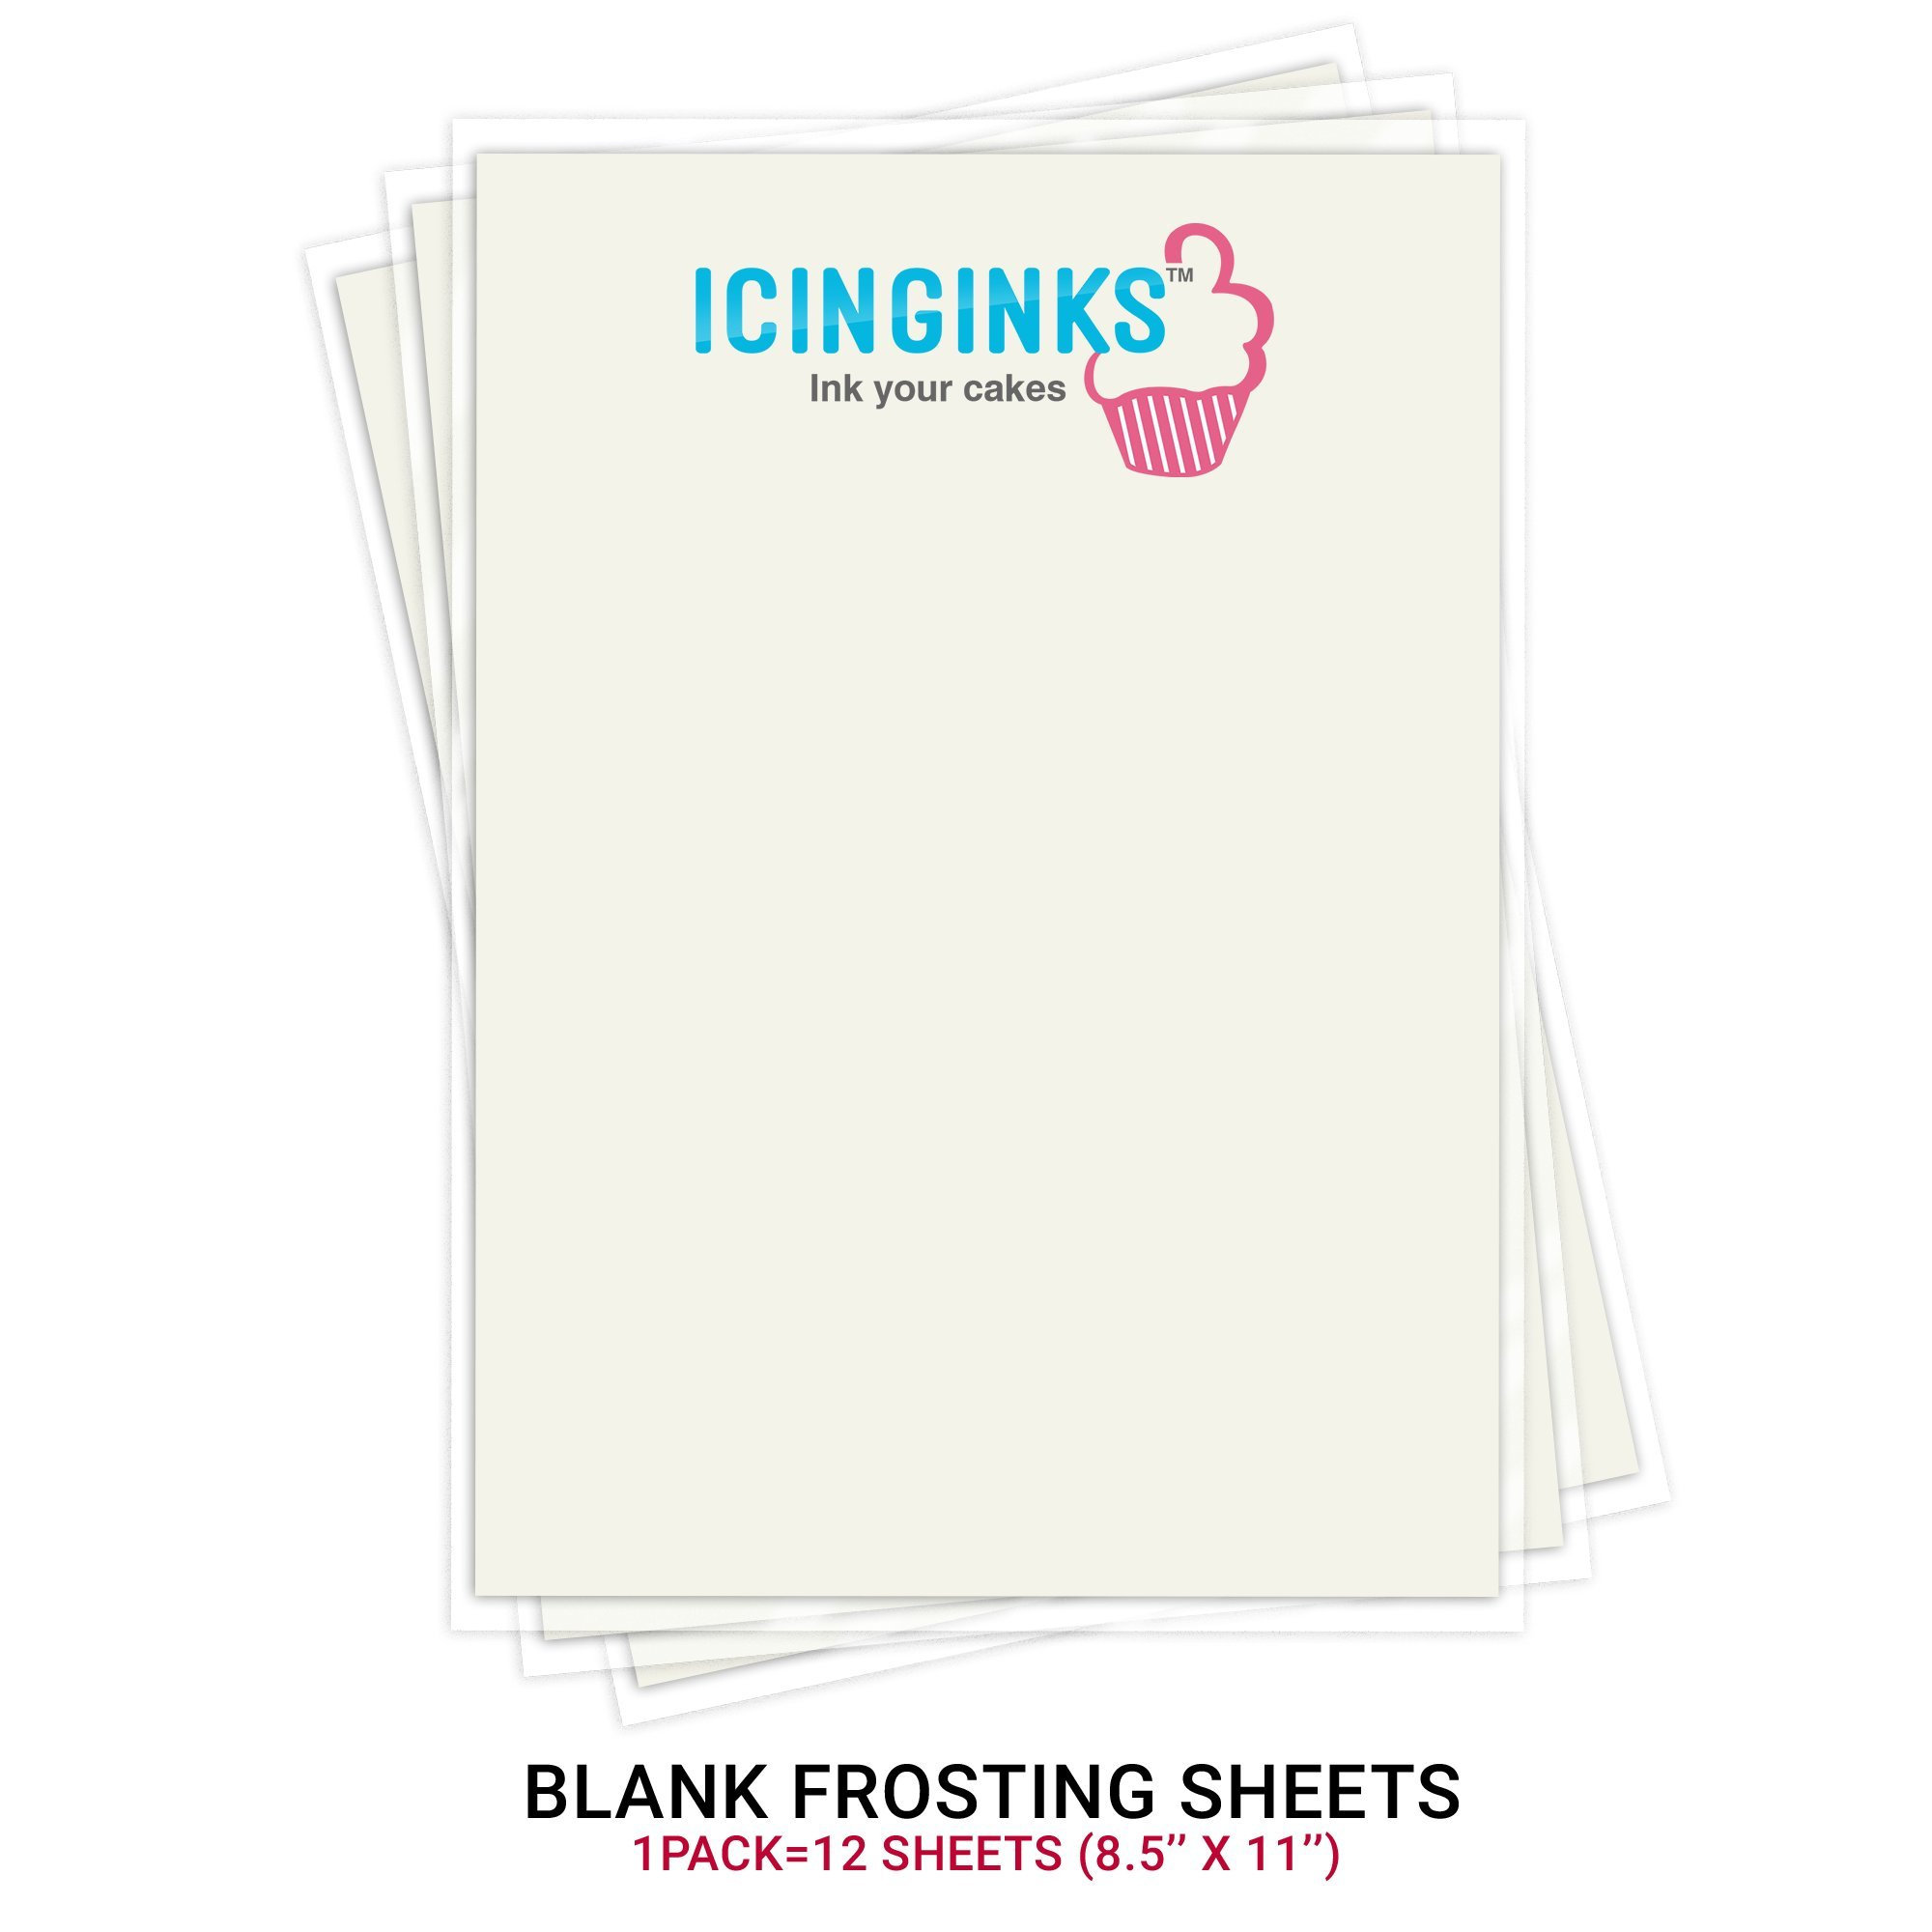 Icinginks Wide Format Edible Printer System - Comes with Refillable Edible Cartridges and 12 Frosting Sheets - Canon PIXMA iX6820 (Wireless)